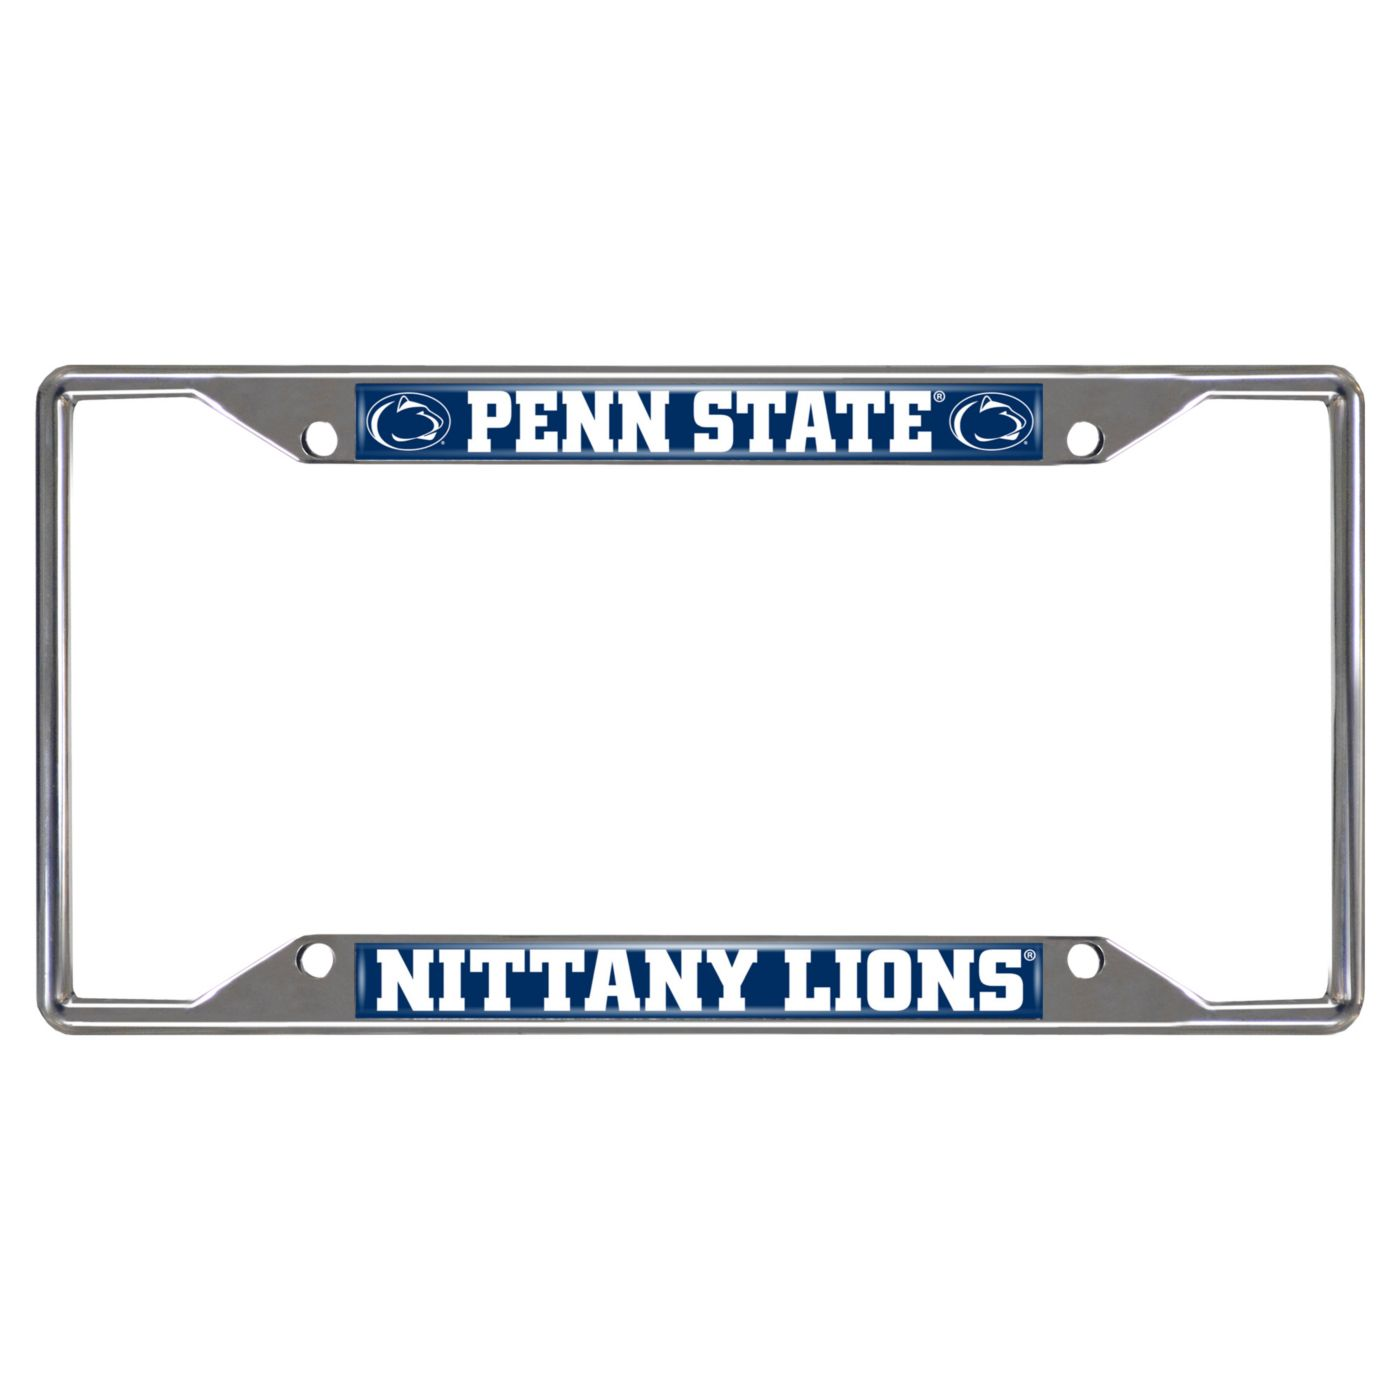 FANMATS Penn State Nittany Lions License Plate Frame